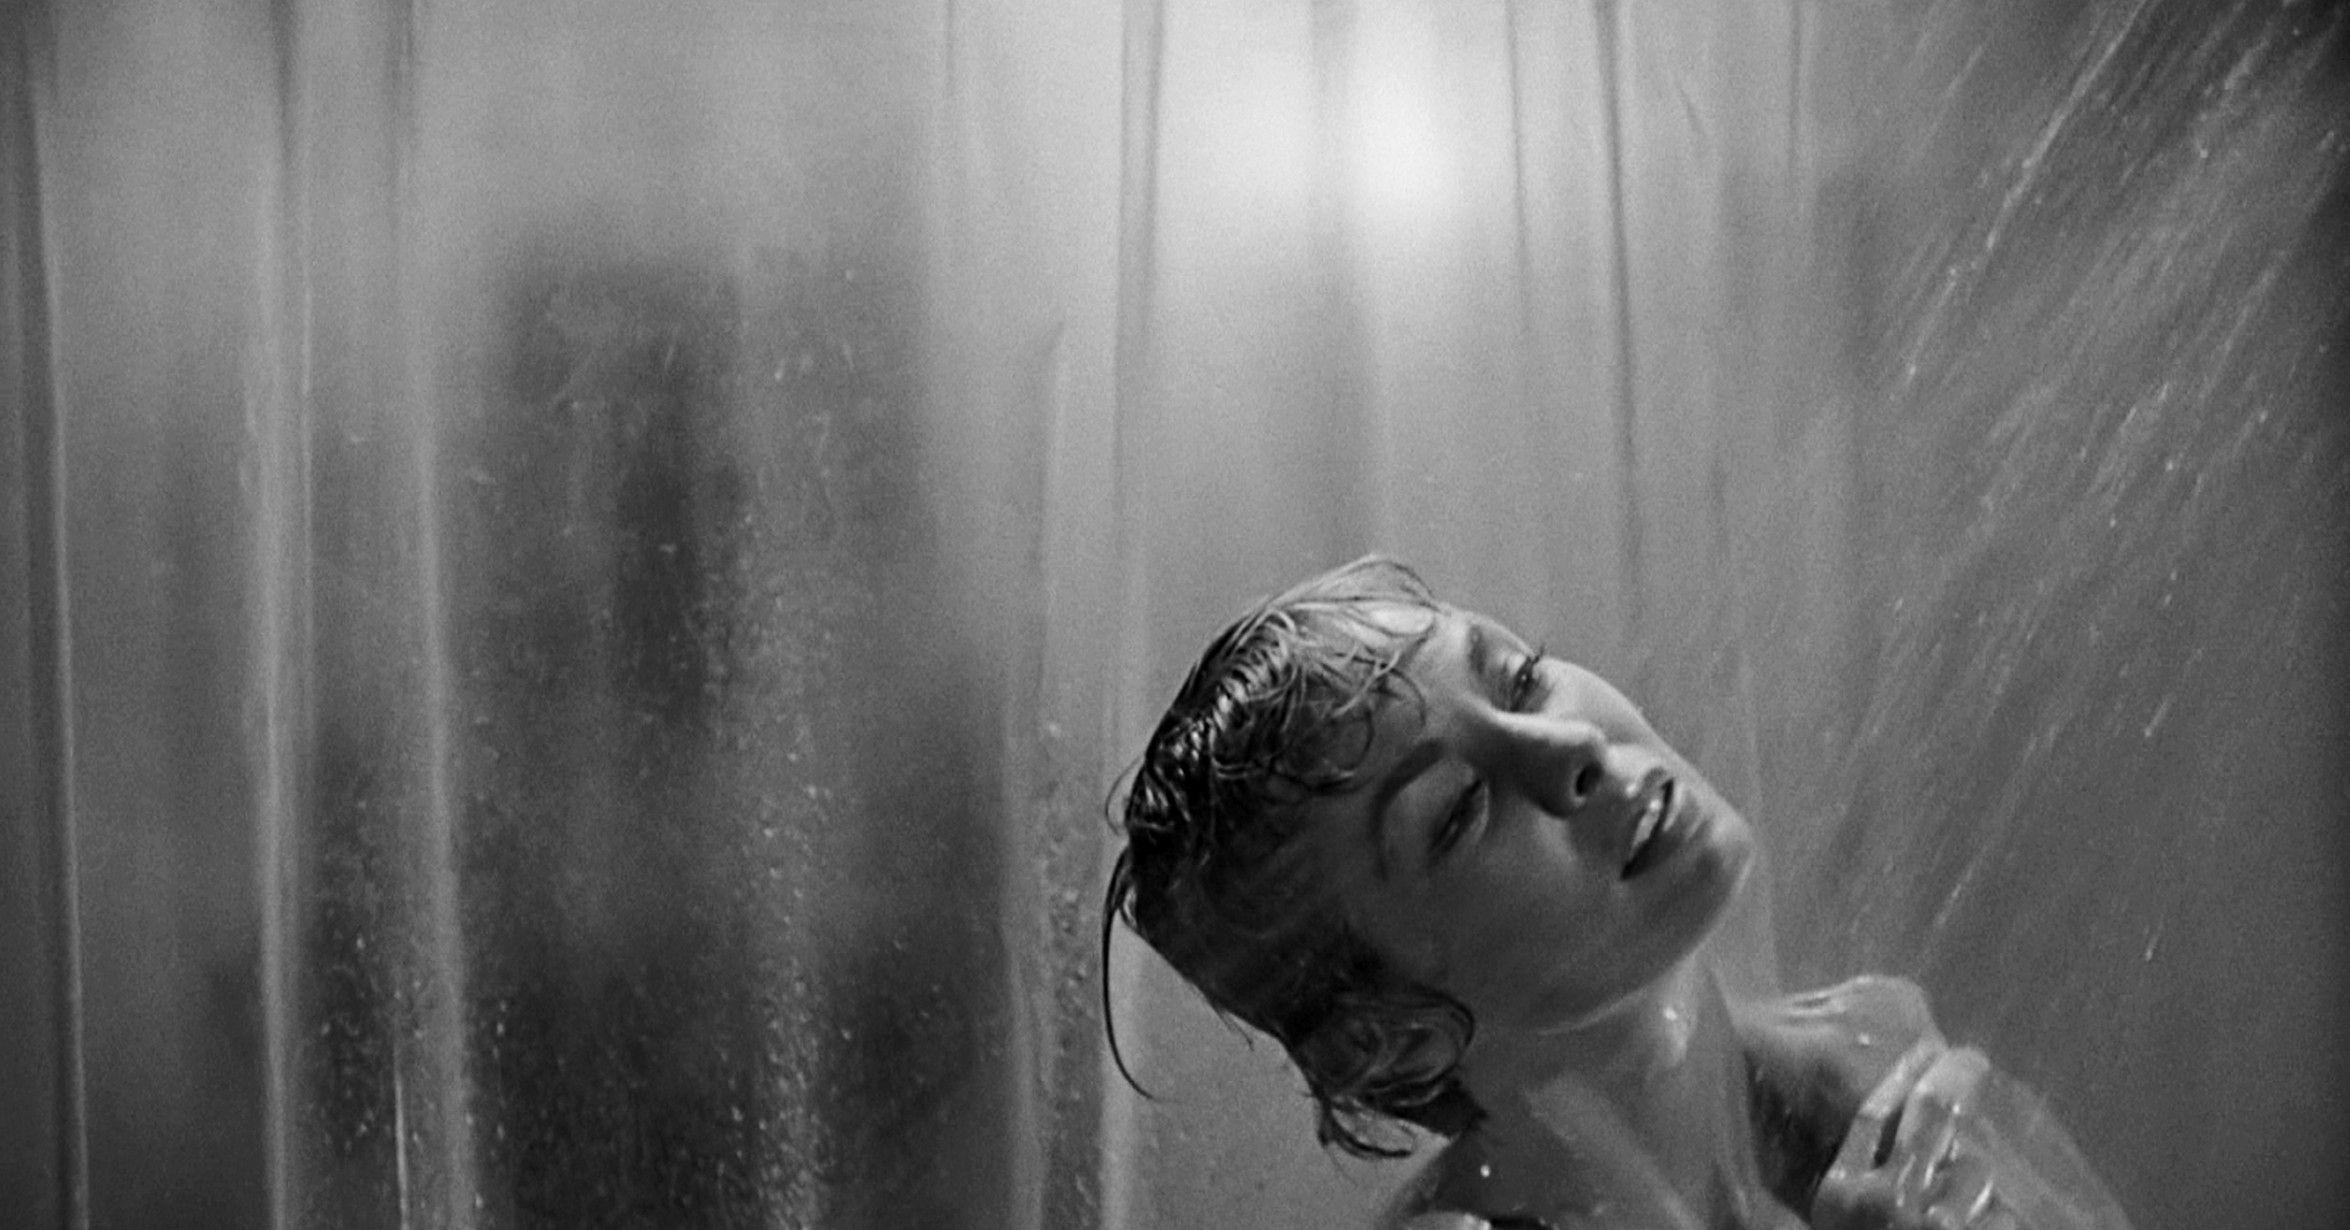 media studies analysis of psycho hitchcock 1960 shower